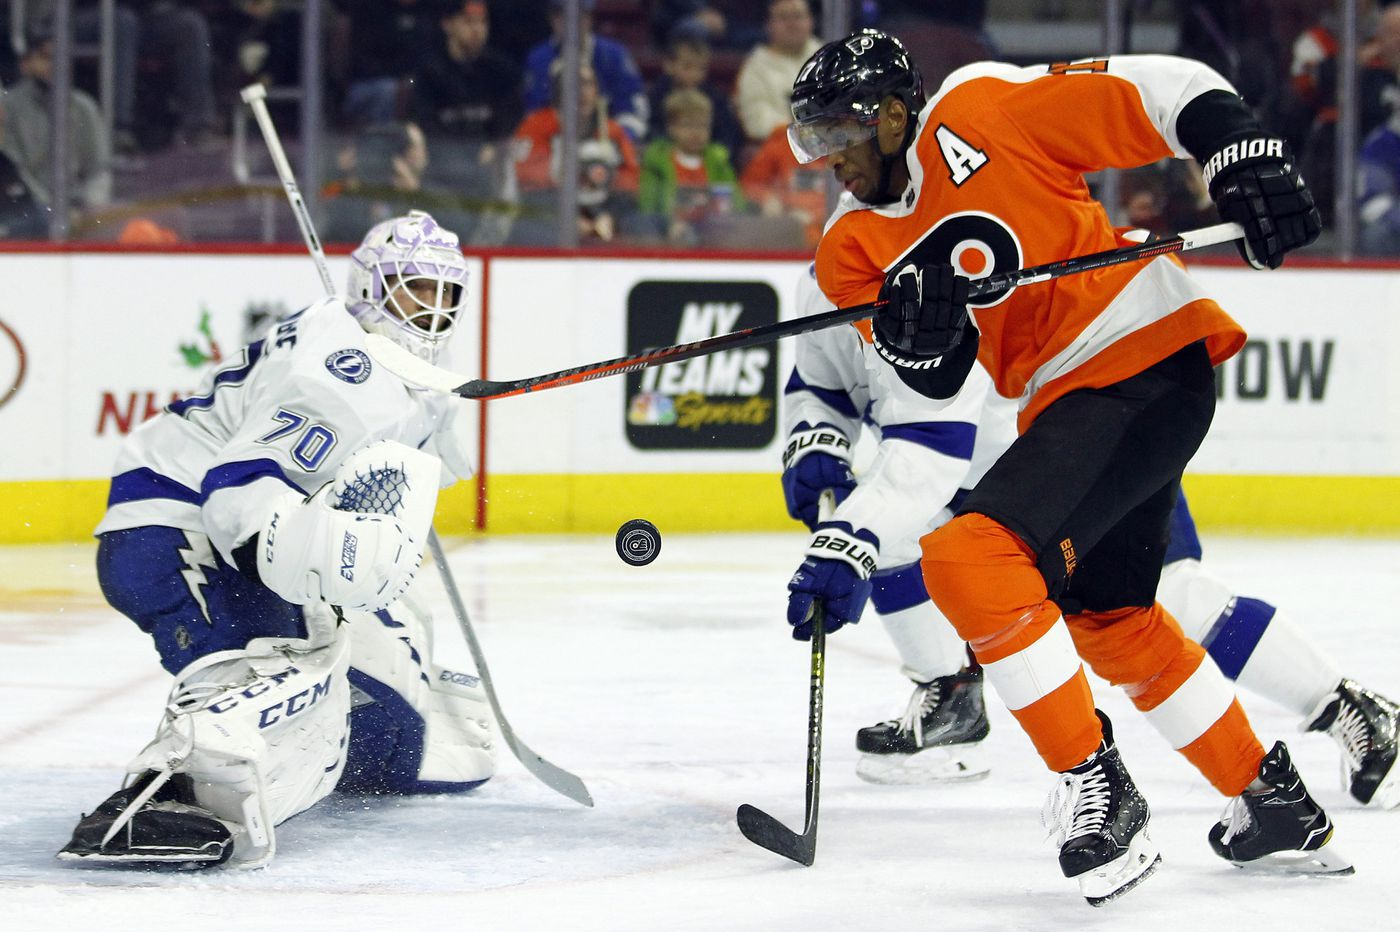 Flyers roar back but lose in OT to Tampa Bay, 6-5